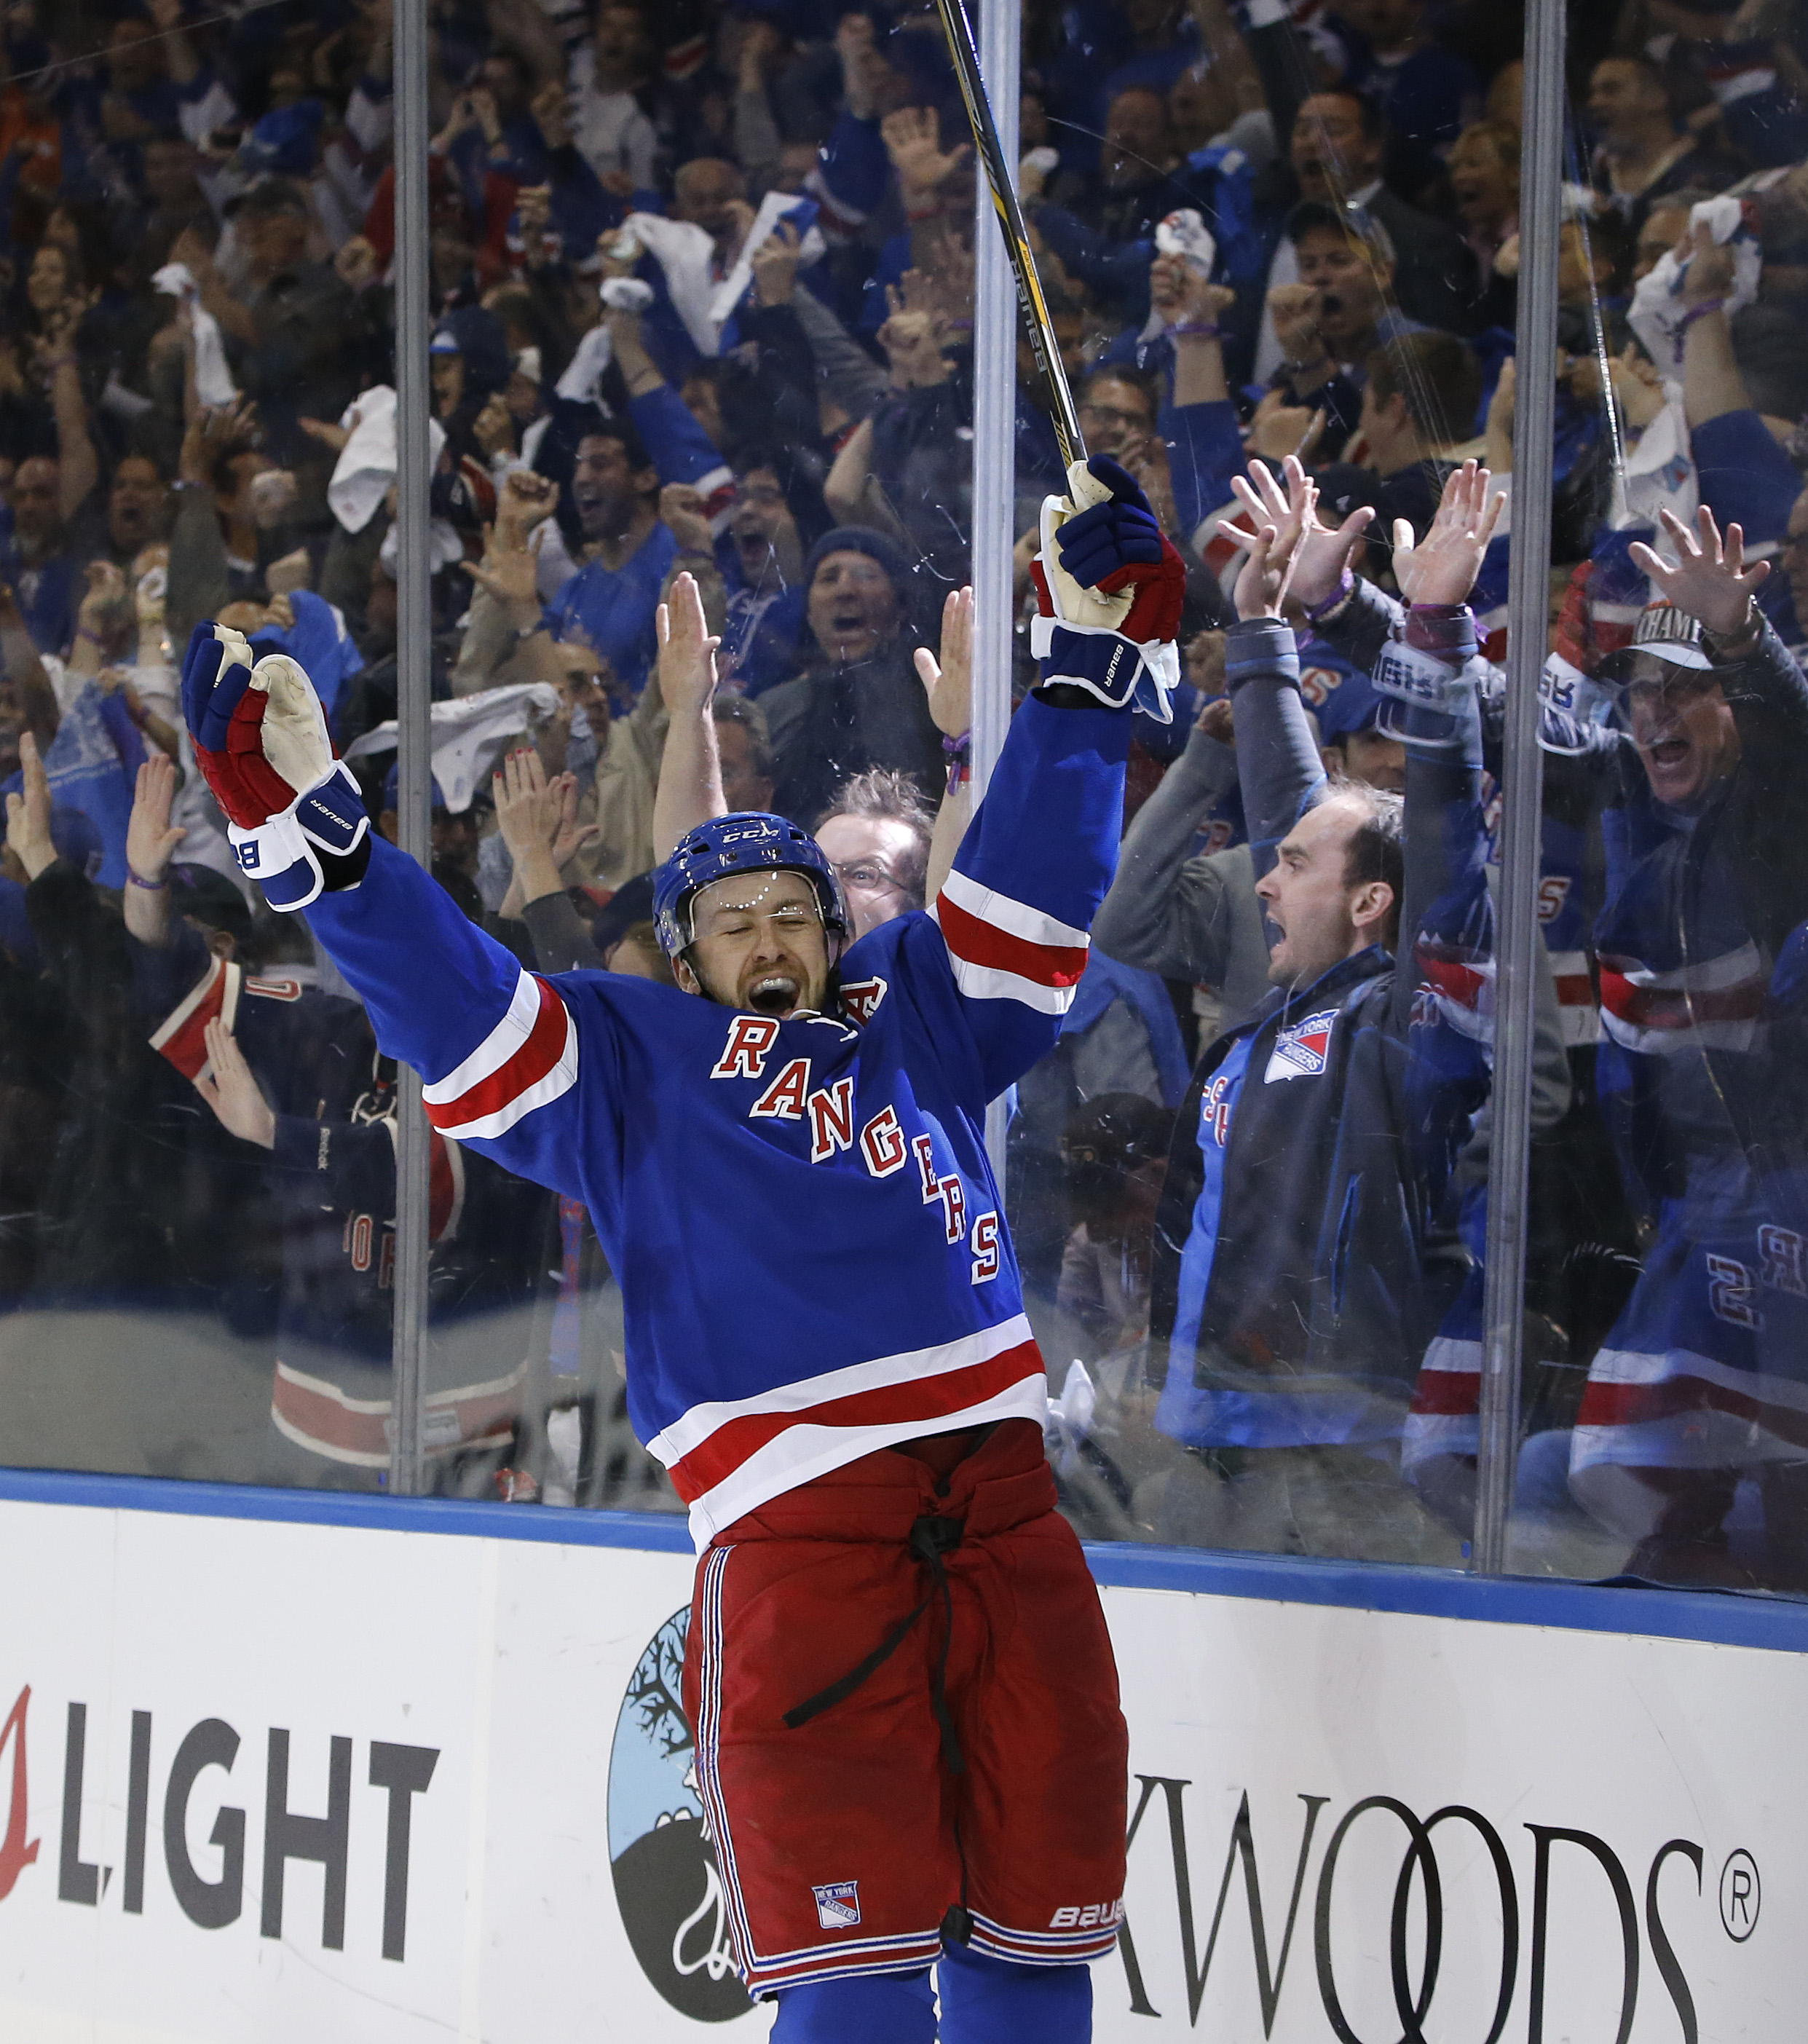 New York Rangers center Derek Stepan (21) celebrates his second period goal against the Tampa Bay Lightning in Game 1 of the Eastern Conference final during the NHL hockey Stanley Cup playoffs, Saturday, May 16, 2015, in New York. The Rangers won 2-1. (AP